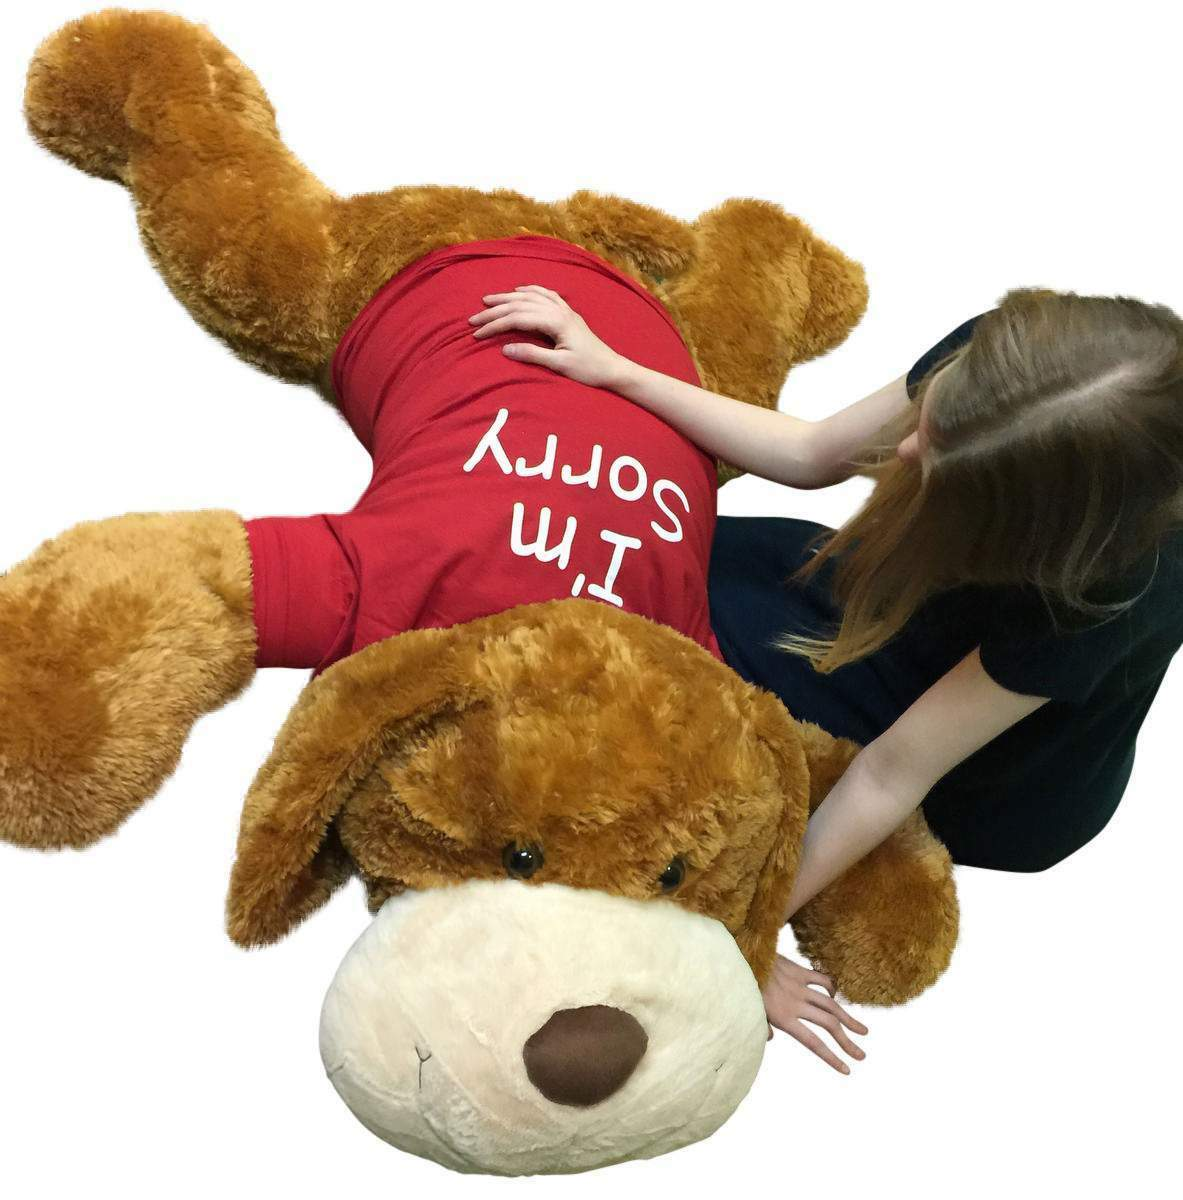 I'm SORRY Giant Stuffed Puppy Dog 5 Feet Long Brown Soft Wears i'm SORRY T-shirt